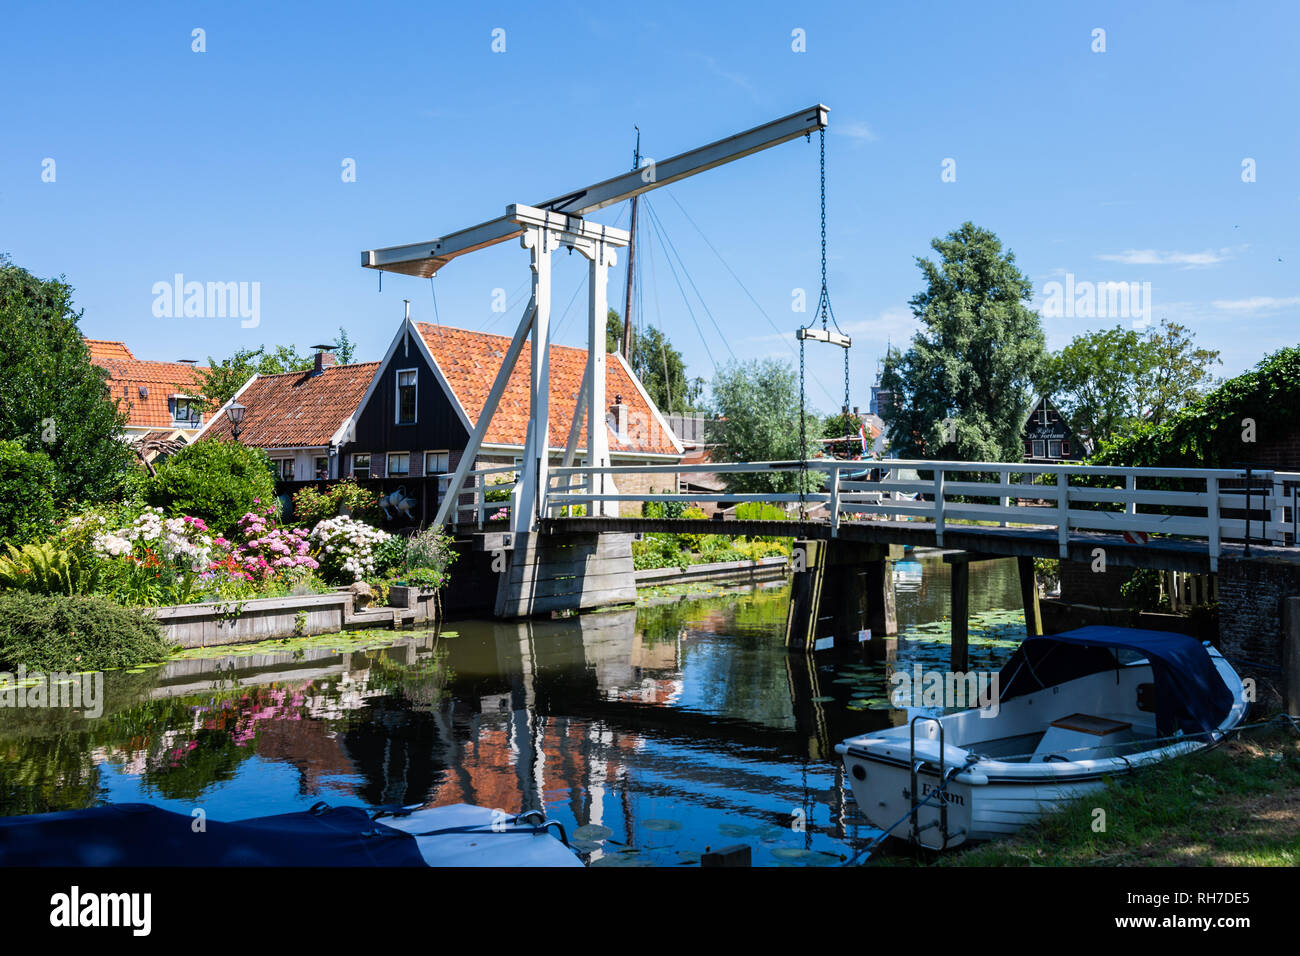 Nice bridge reflected in the water. Edam. Netherlands. Europe - Stock Image